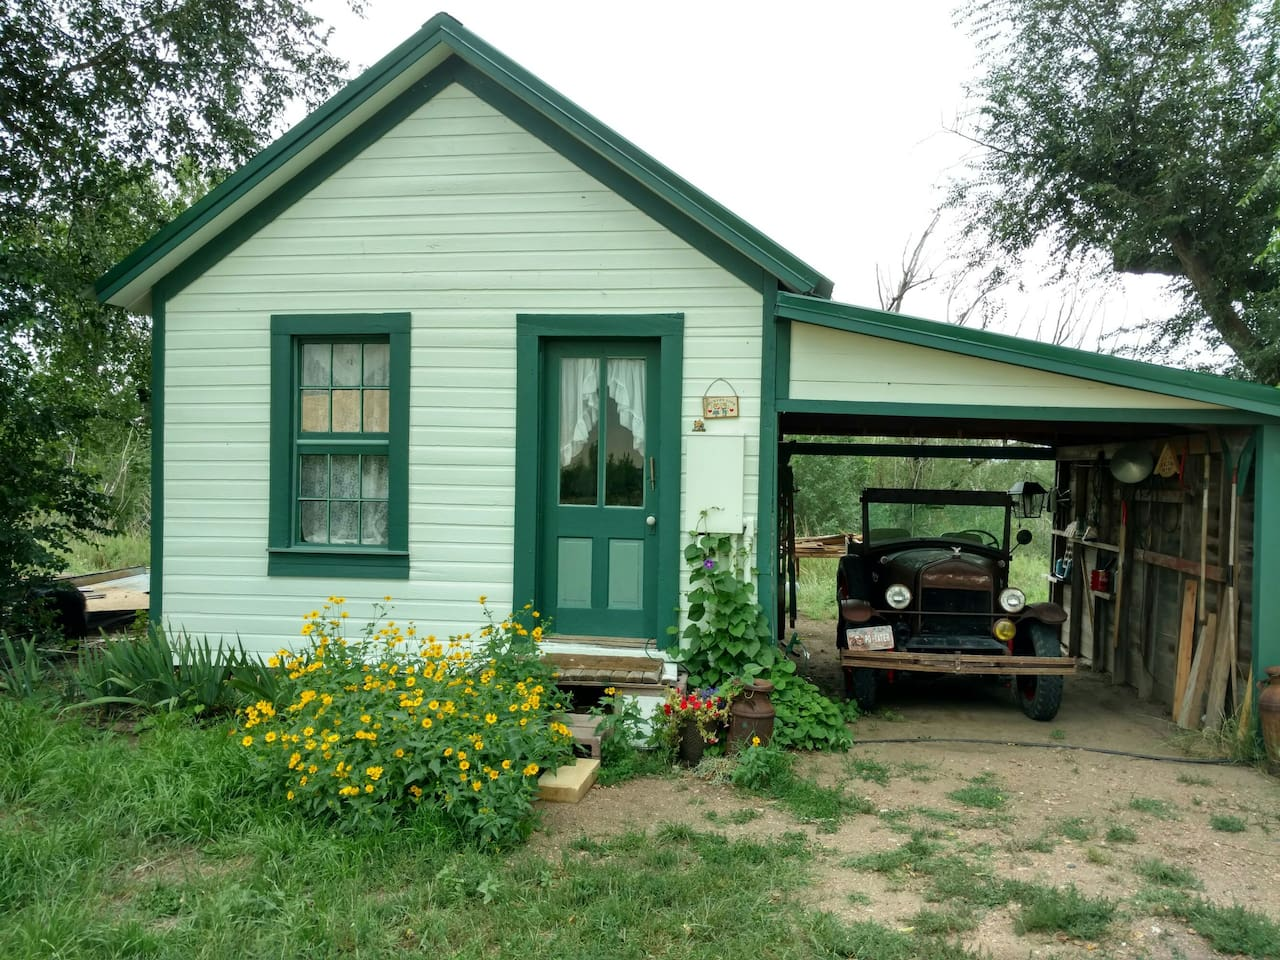 The 1914 Homestead Cottage ready for guest in August, 2016 when this photo was taken. Now it is ready for you and even more improved in spring of 2019 ! Thanks to guest and others making this rescue possible!  it is now freshly painted white & green